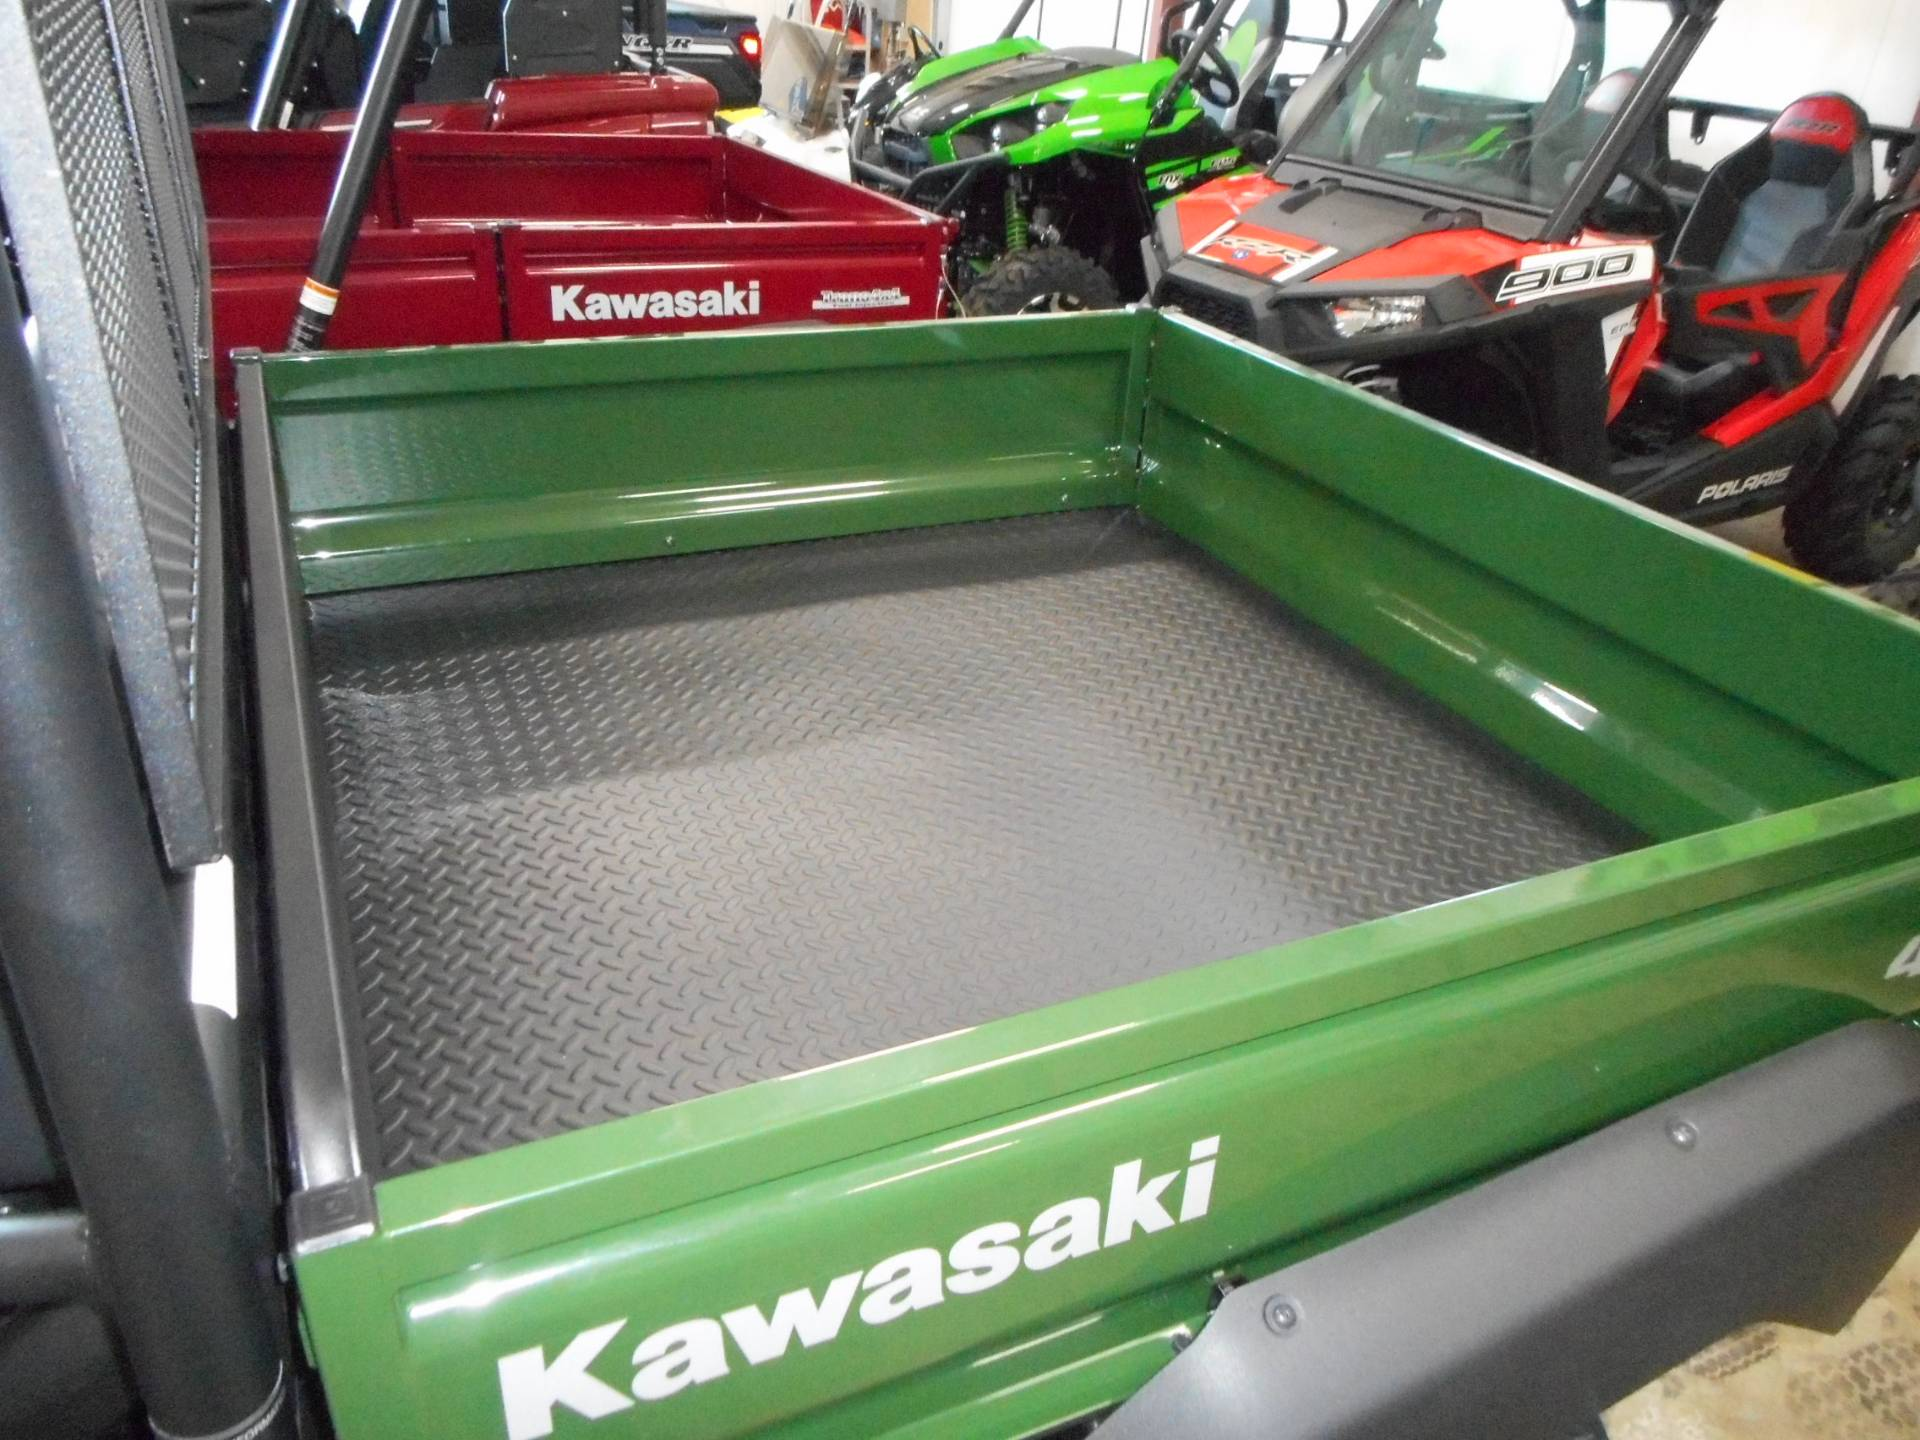 2020 Kawasaki Mule 4010 4x4 in Belvidere, Illinois - Photo 5